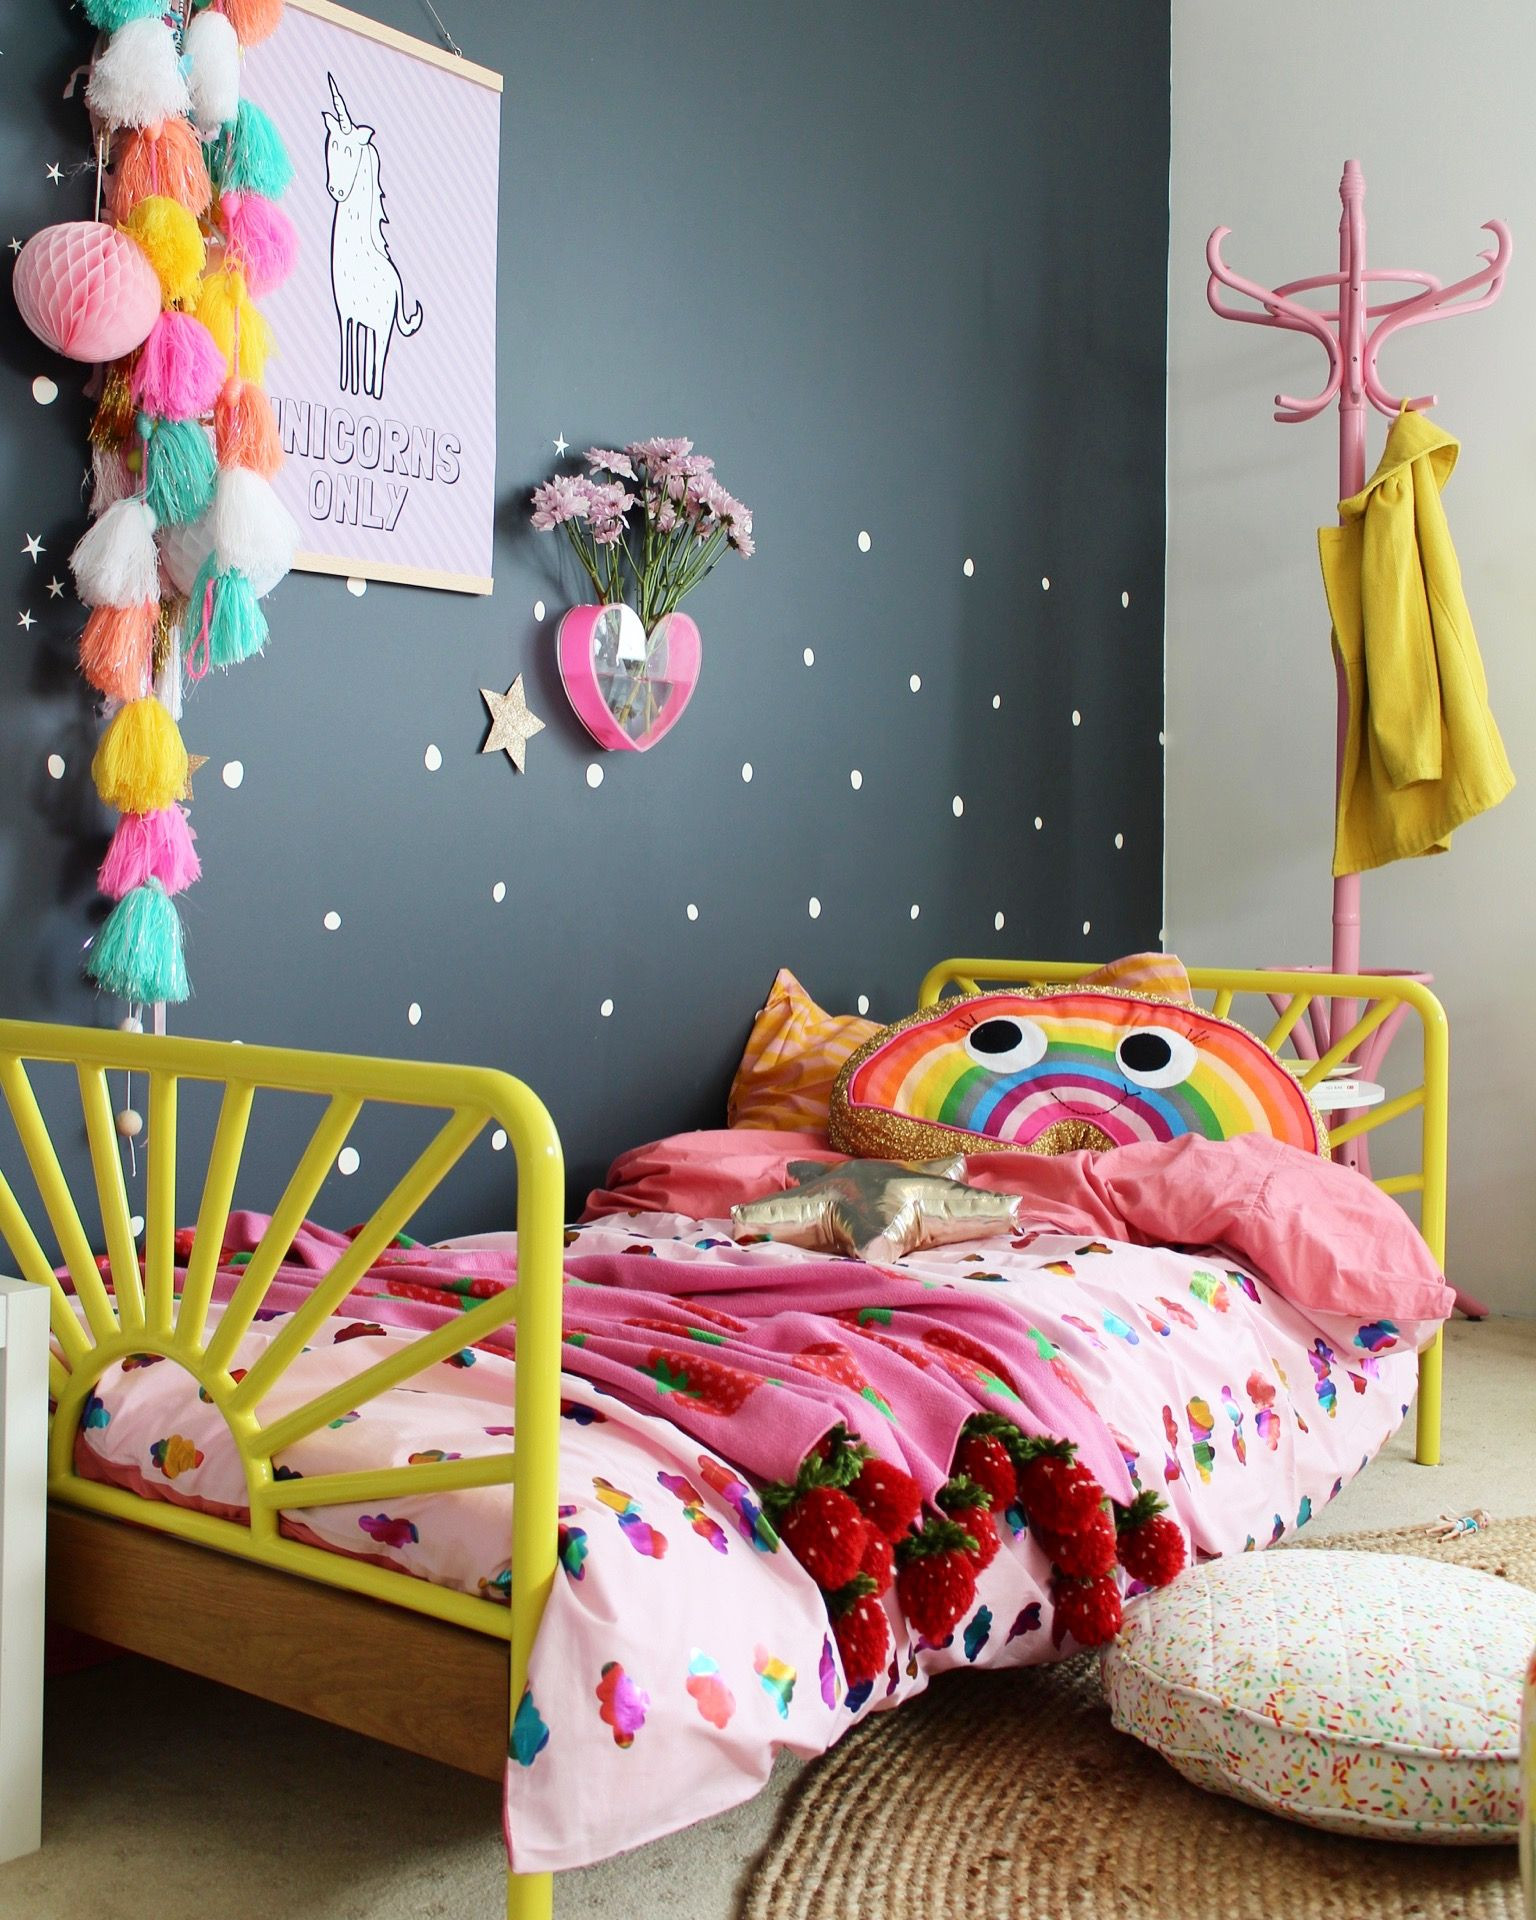 Best ideas about DIY Kids Bedrooms . Save or Pin 25 Amazing Girls Room Decor Ideas for Teenagers Now.